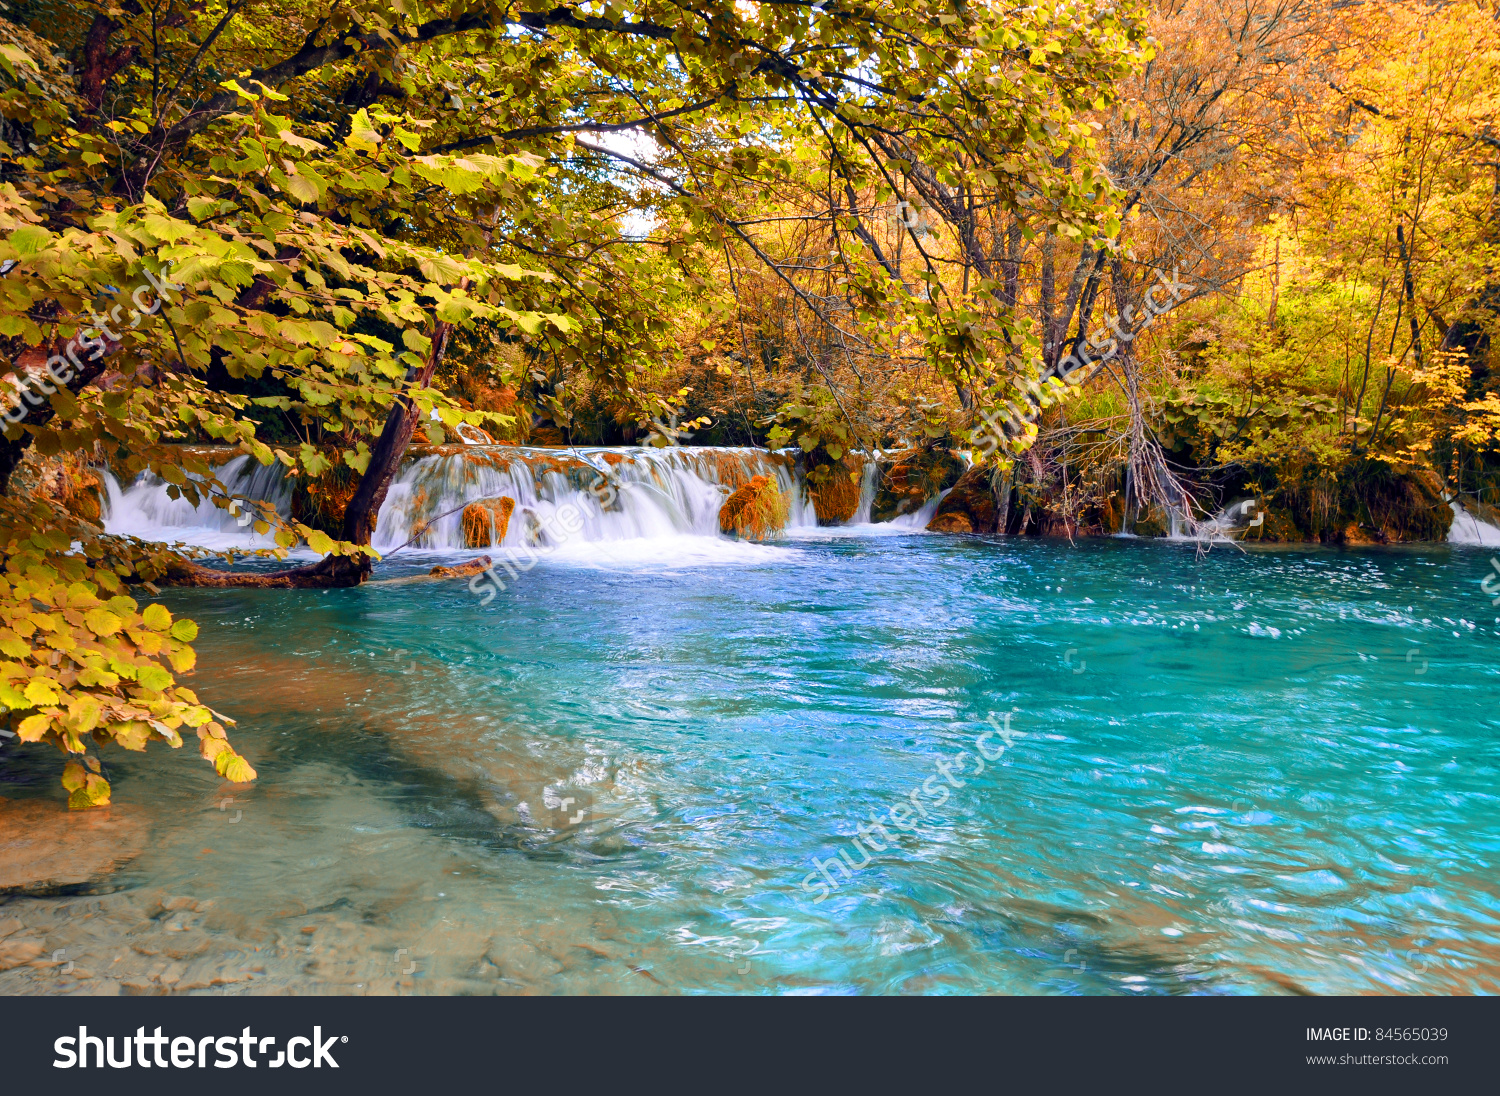 Plitvice Lakes National Park clipart #5, Download drawings